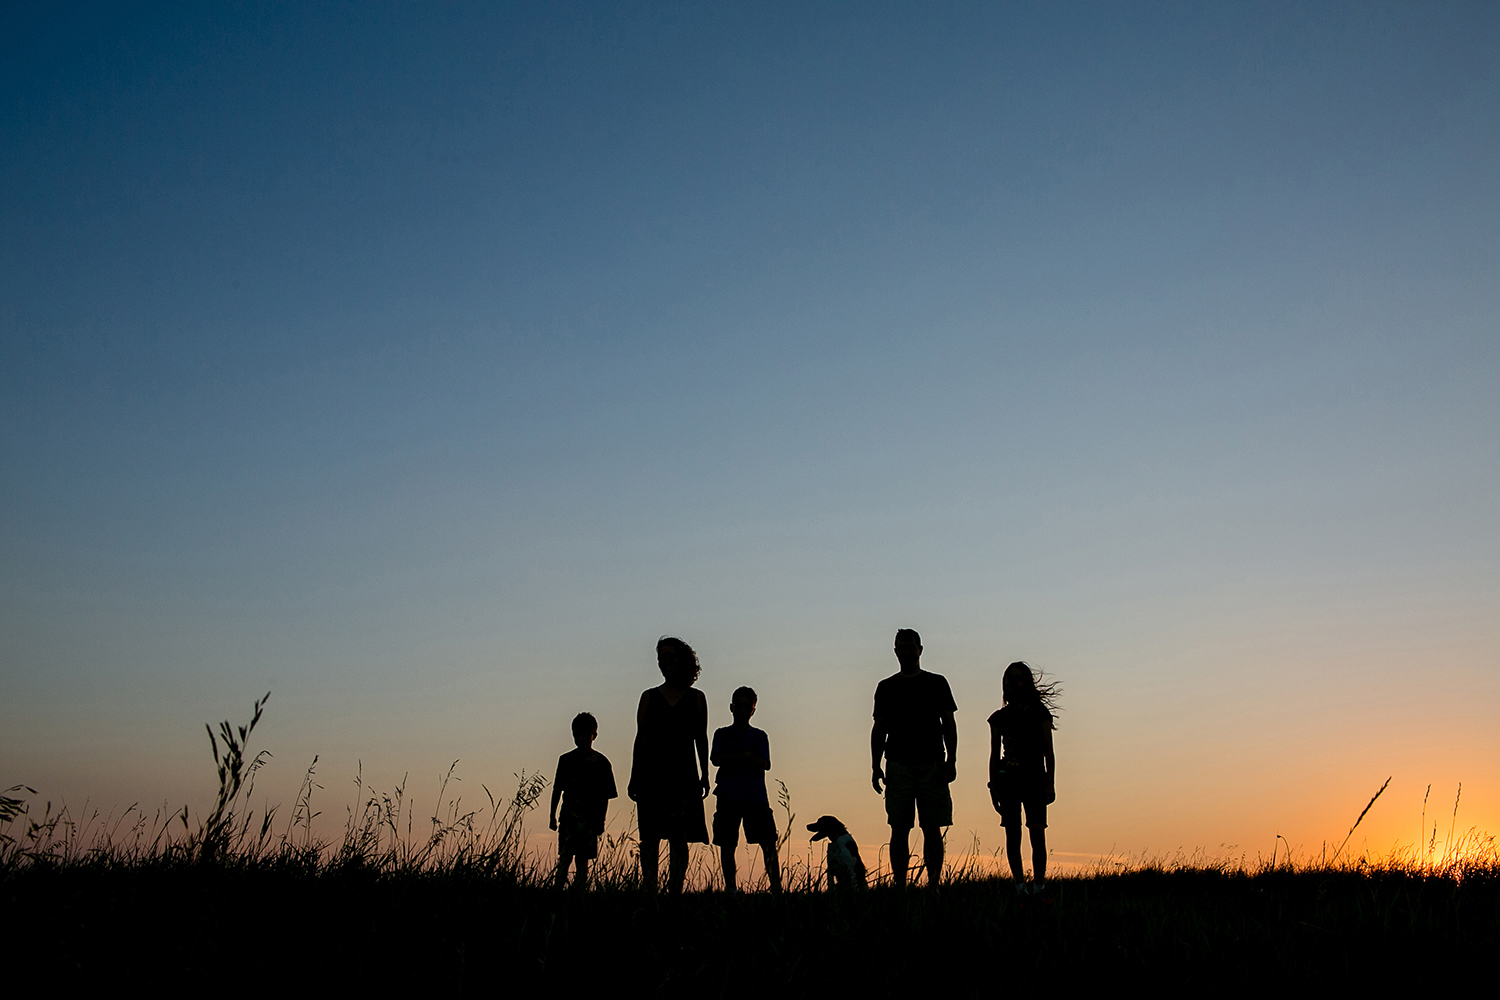 A silhouette portrait of a family with their dog